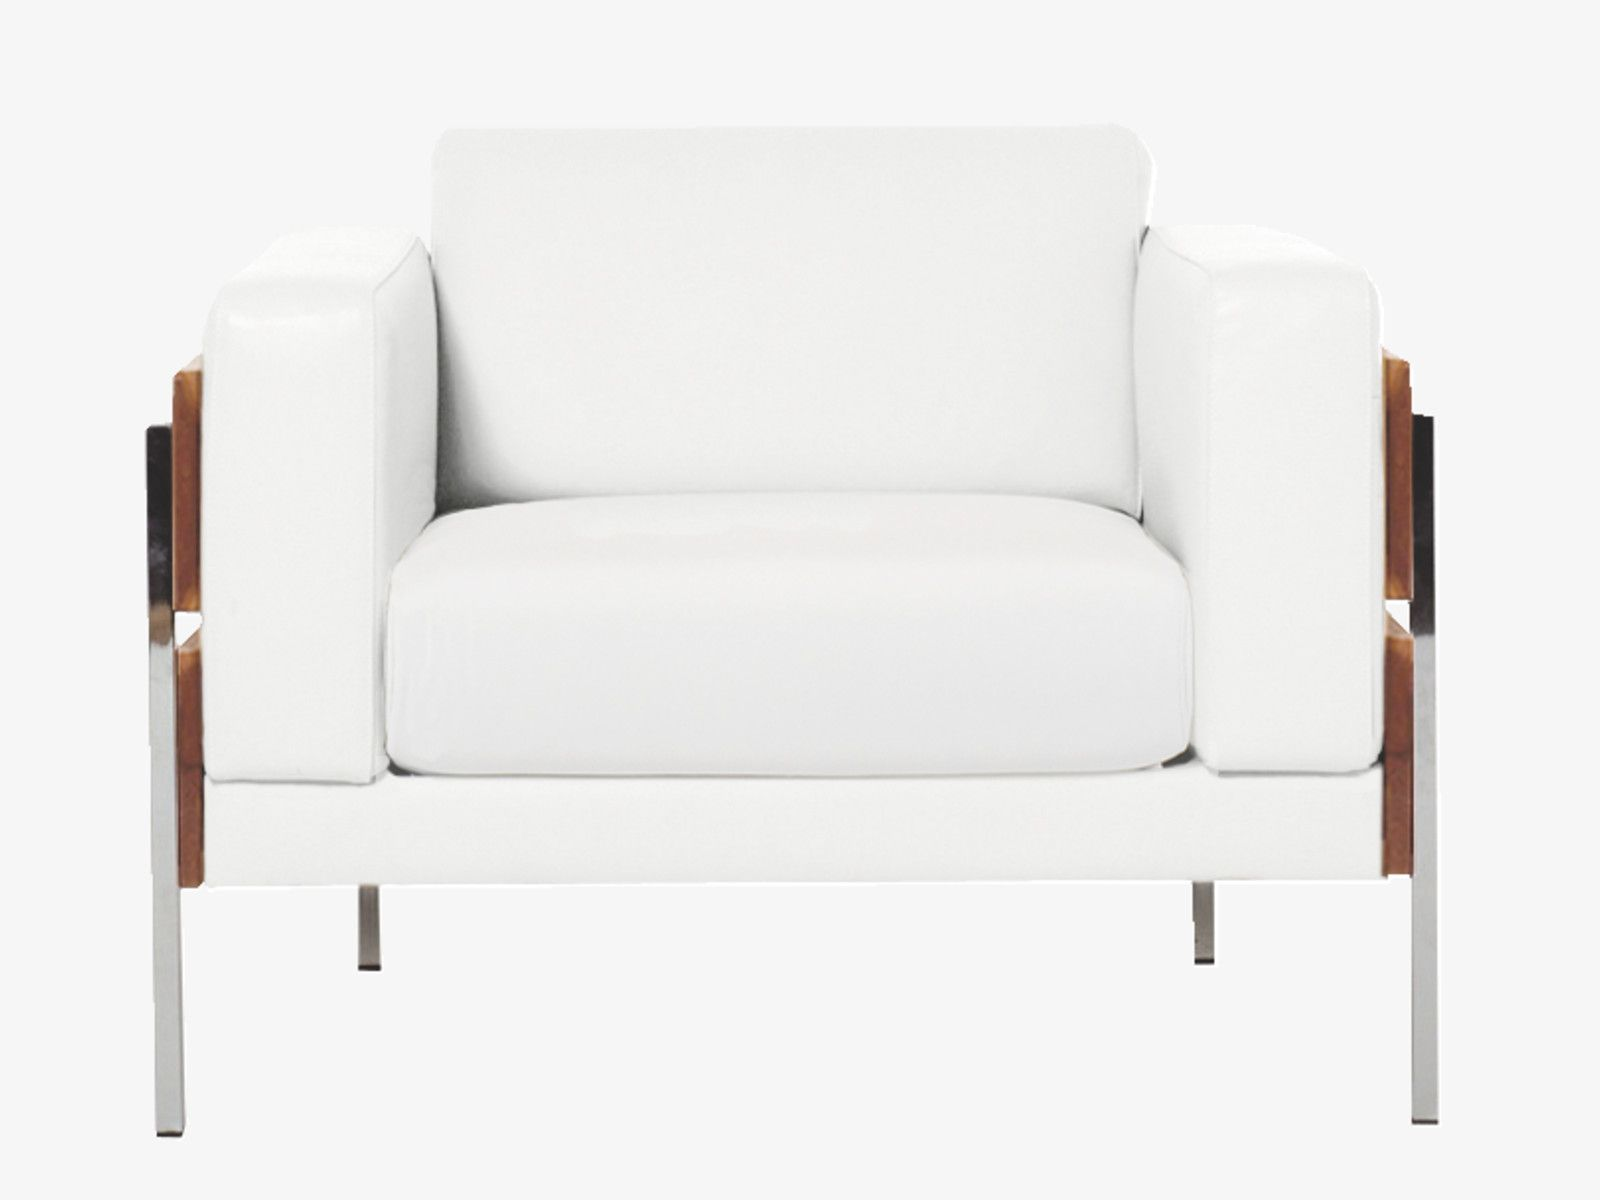 Check Out The New Furniture And Accessories From Our New Ss14 Lookbook Furniture Upholstery Furniture Leather Sofa